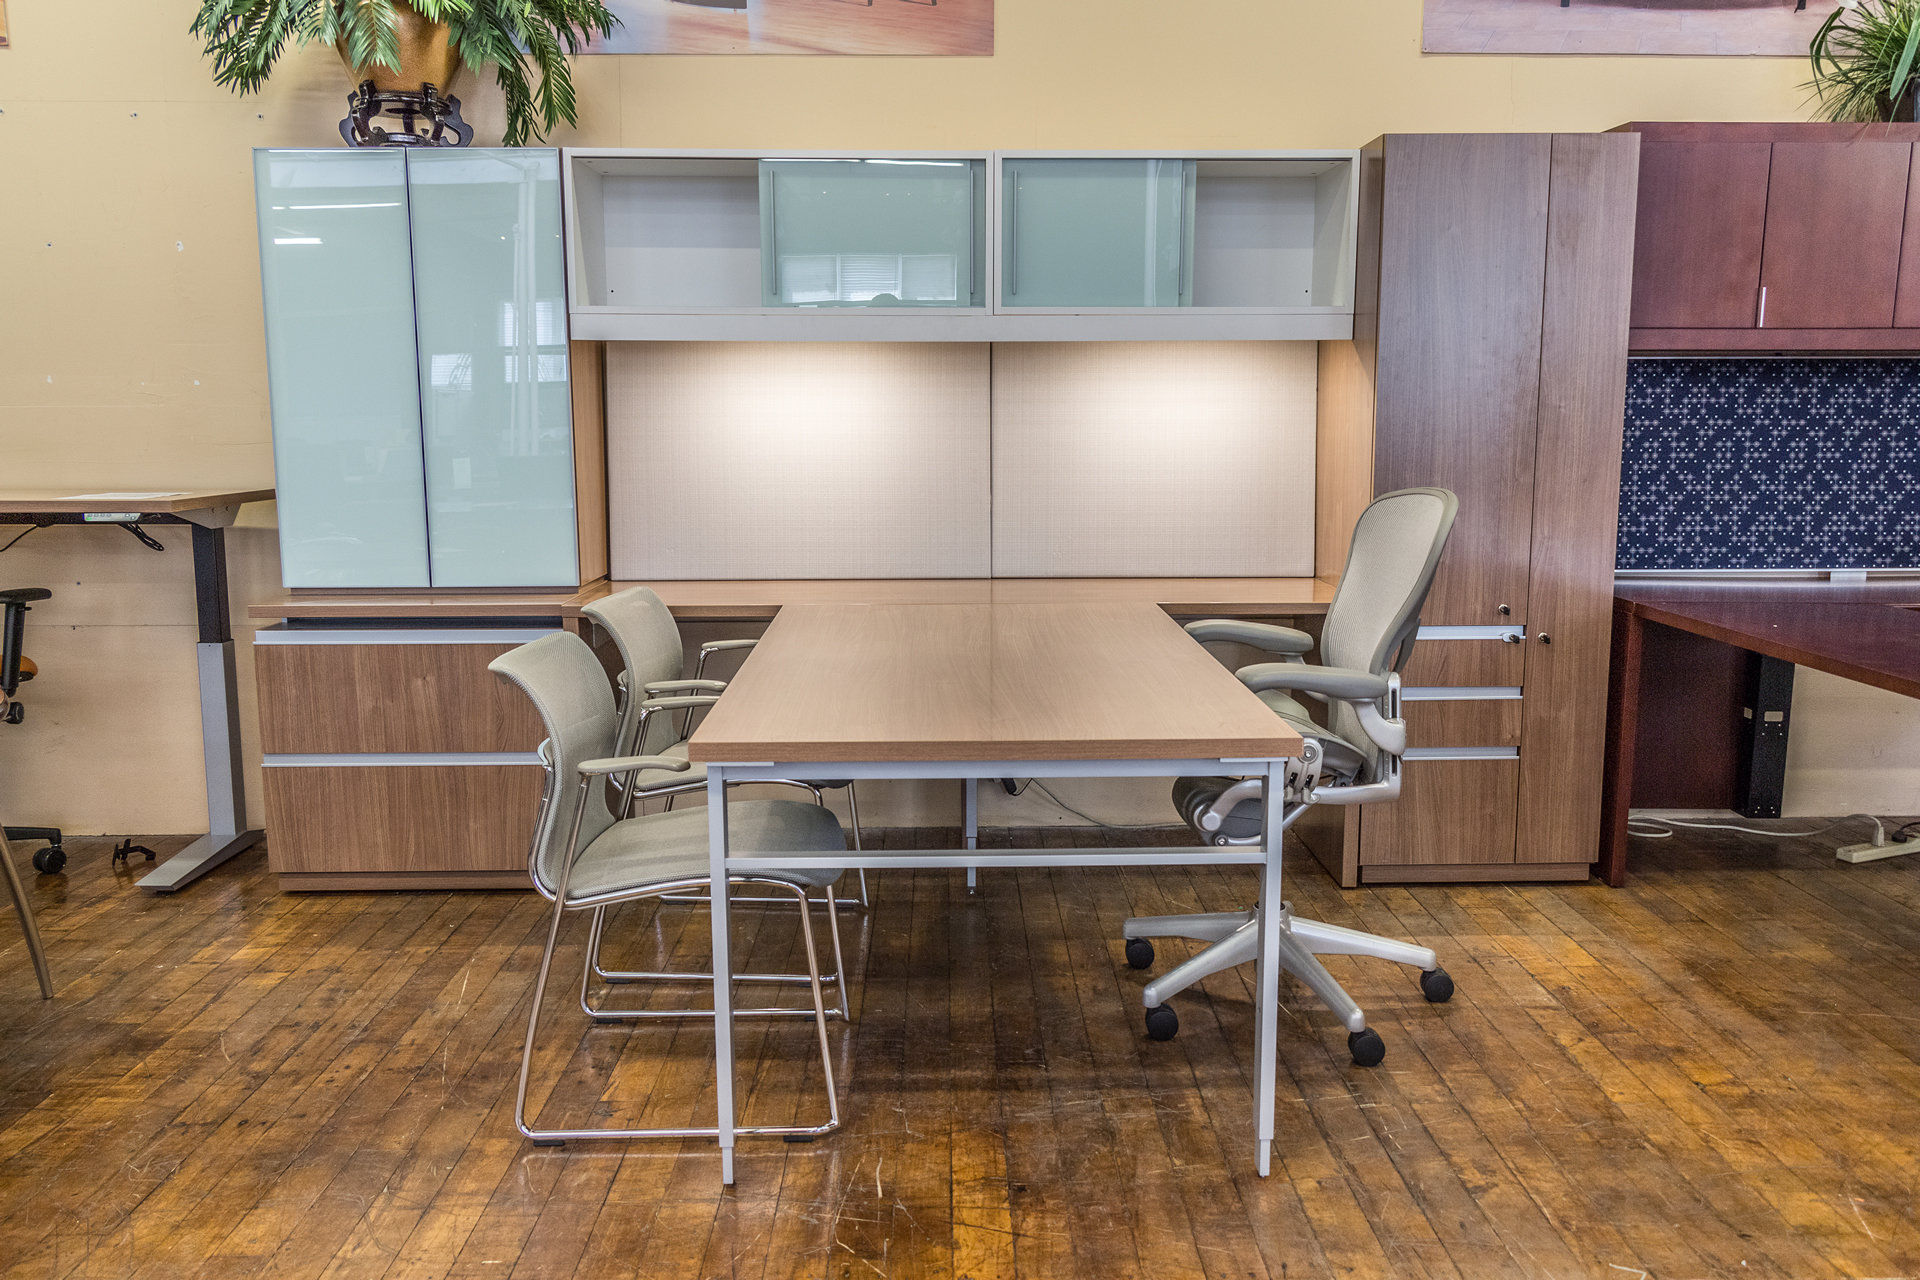 peartreeofficefurniture_peartreeofficefurniture_peartreeofficefurniture_img_9973_1.jpg